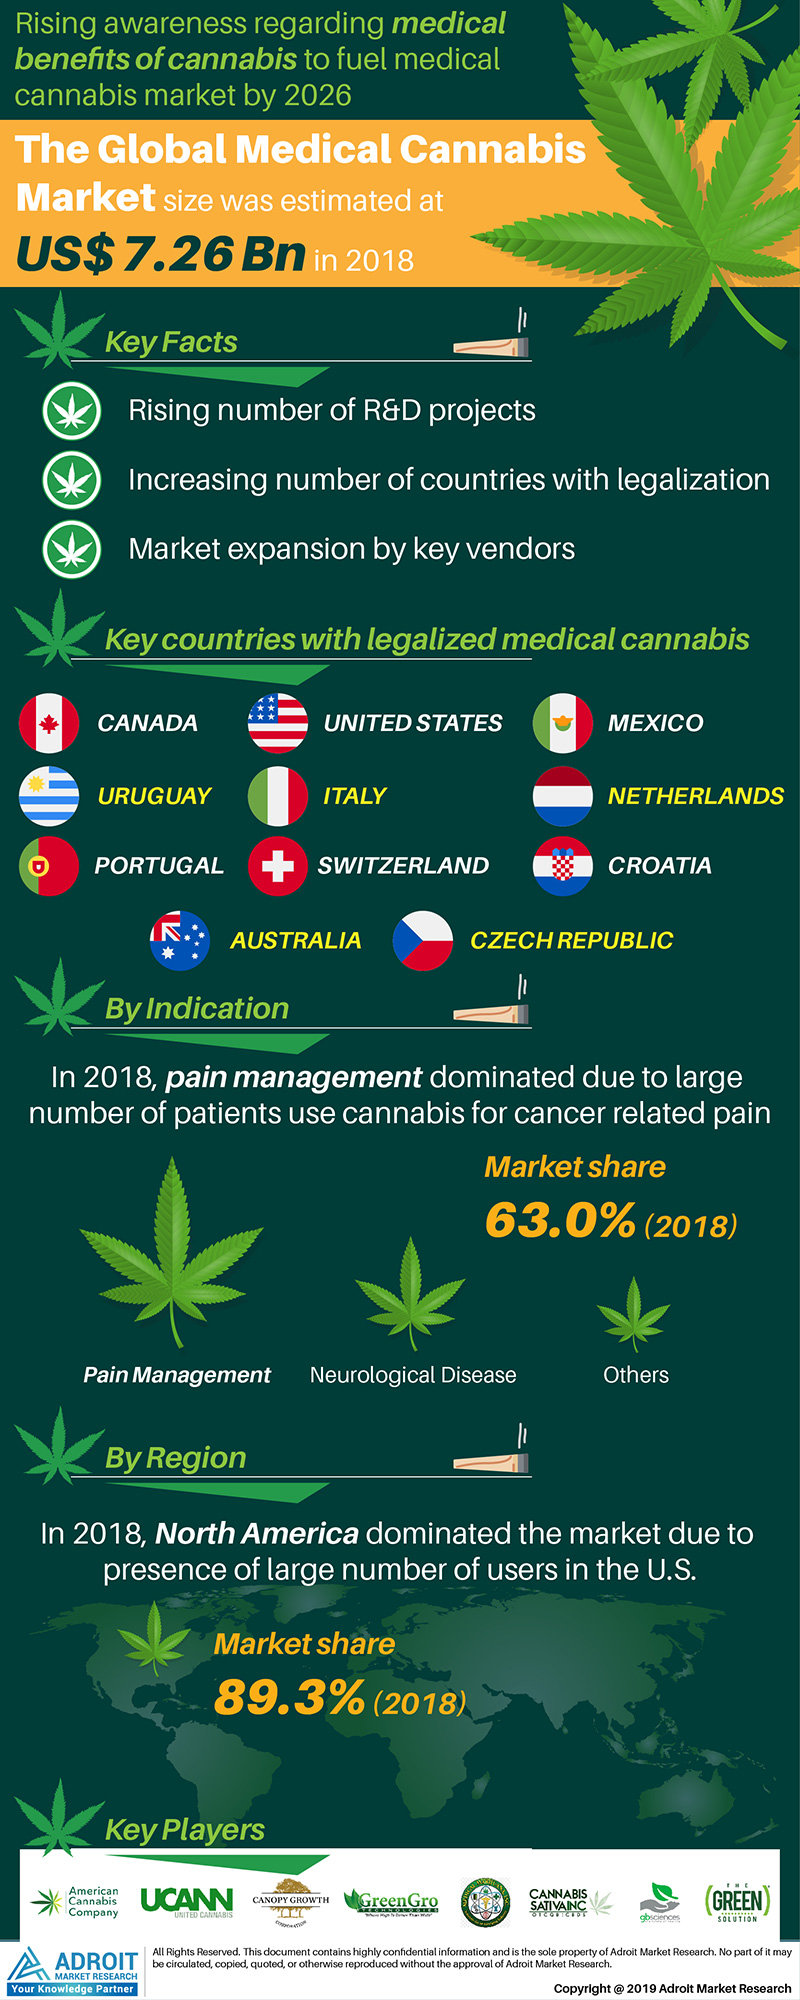 Global Medical Cannabis Market Size 2017 By Indication, Region and Forecast 2016 to 2026